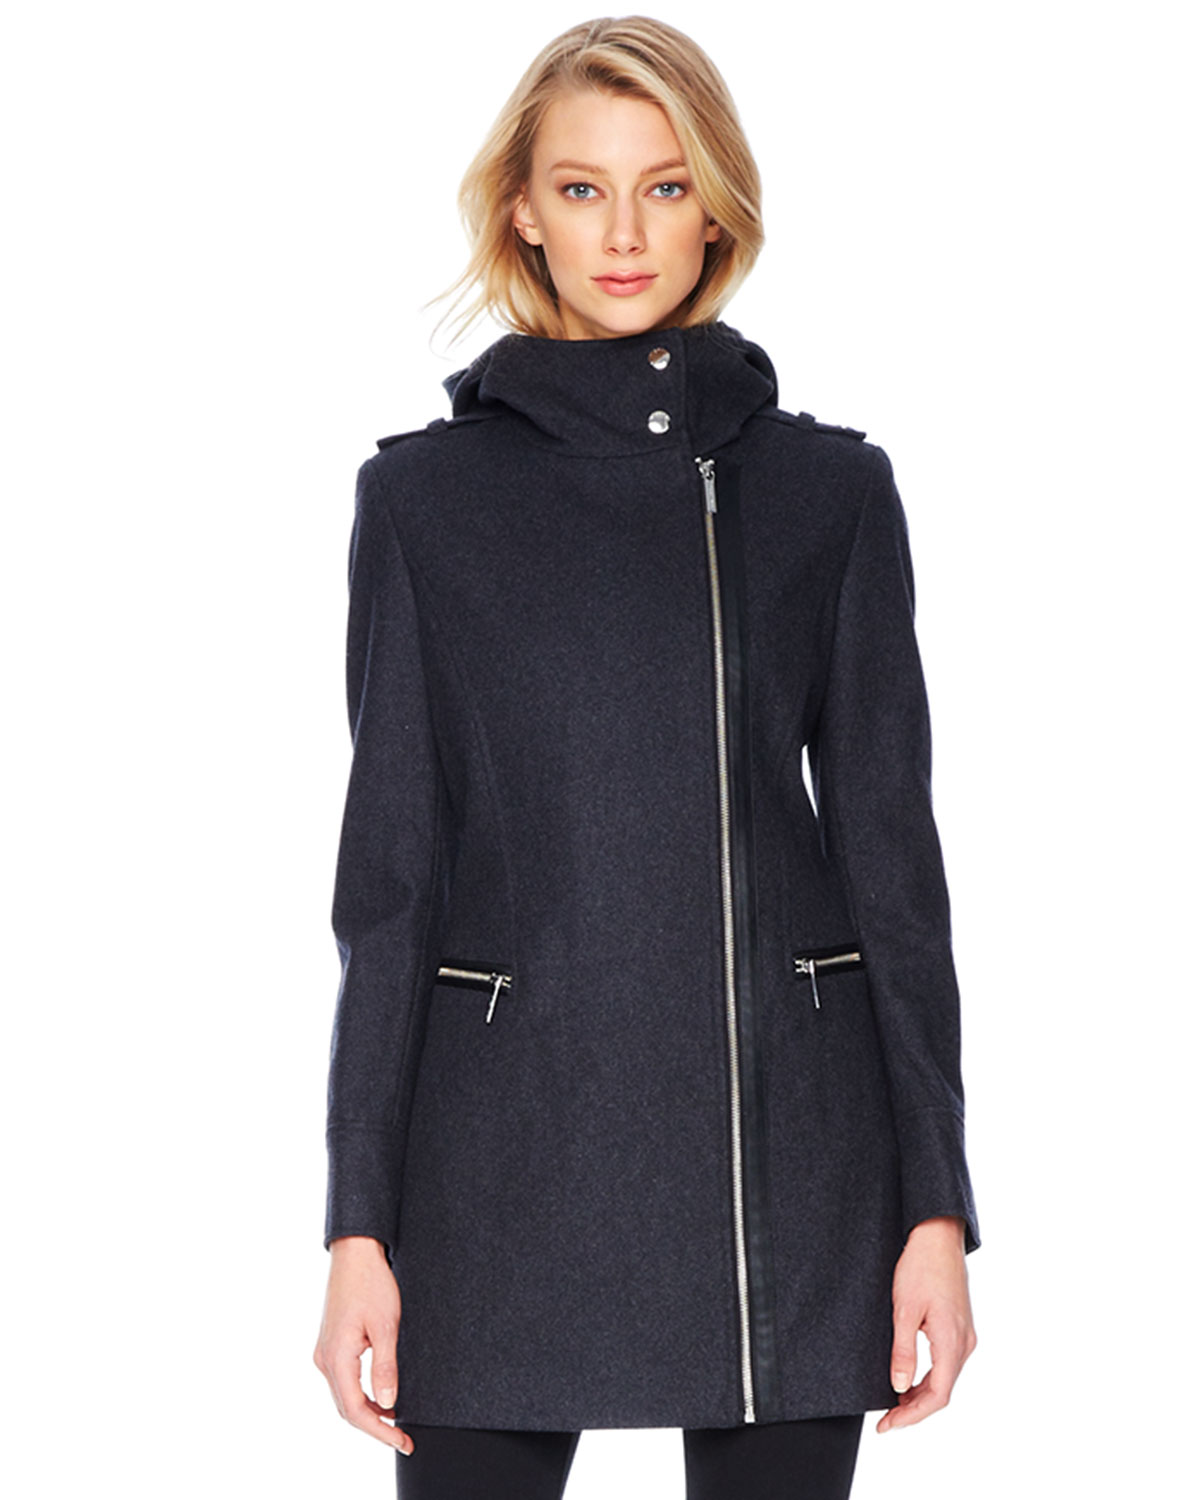 michael kors michael faux leather trim wool coat in gray charcoal lyst. Black Bedroom Furniture Sets. Home Design Ideas